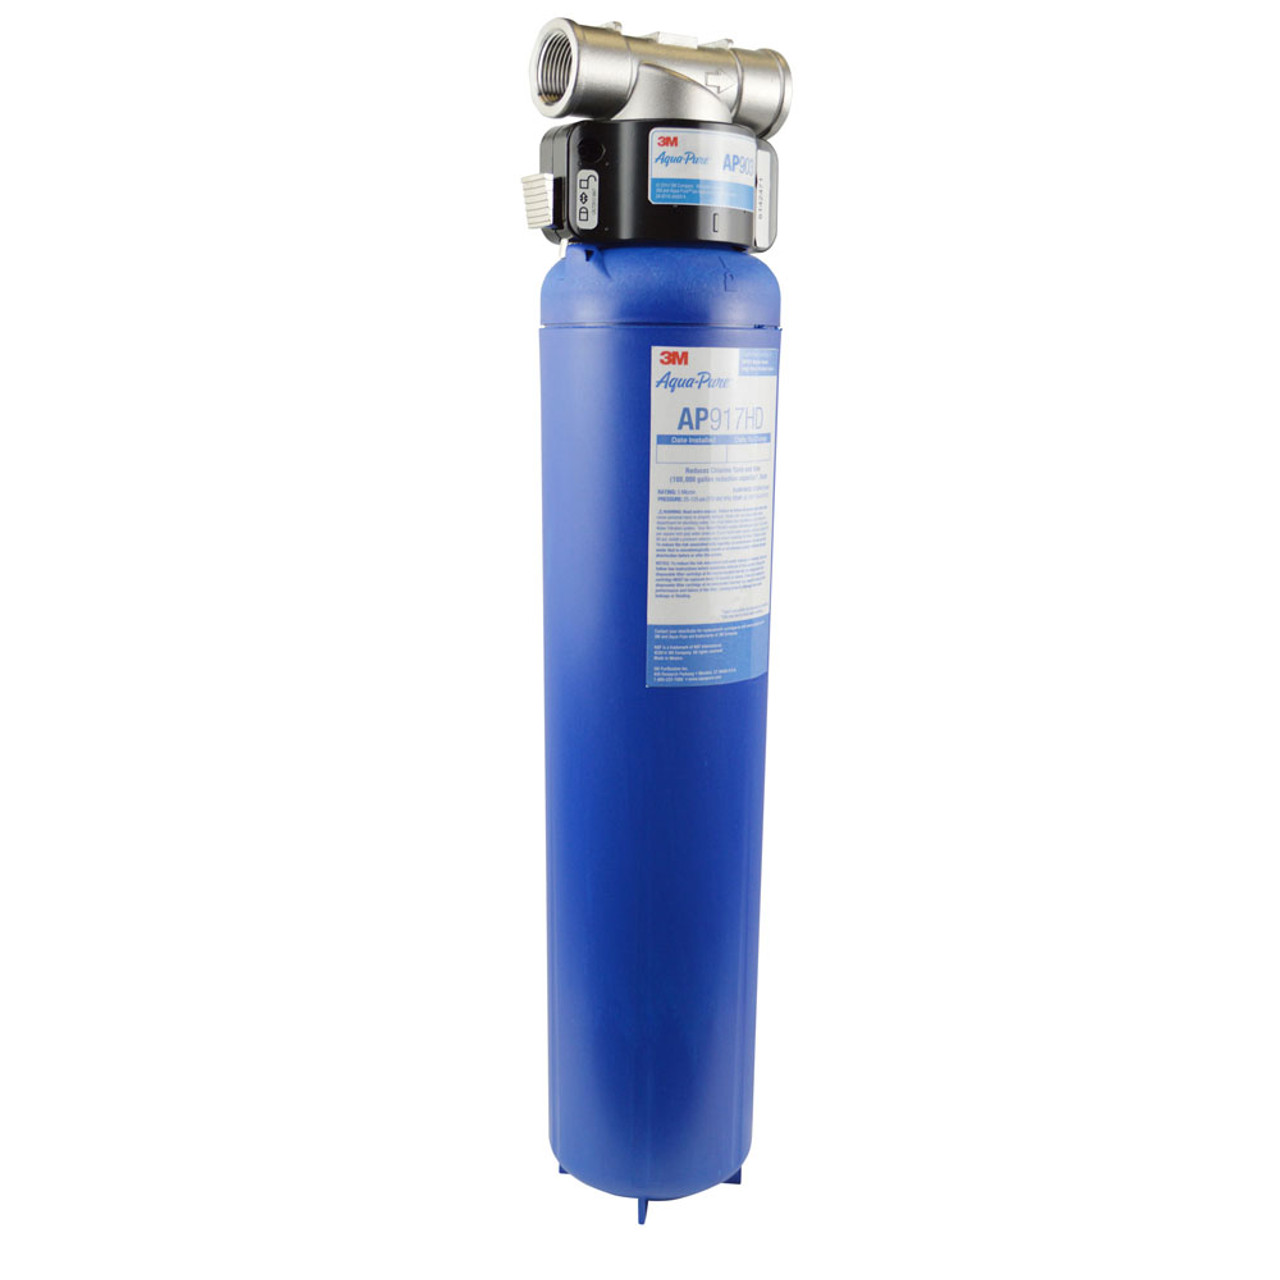 3M Aqua Pure AP903 Whole House SedimentChlorine Filter System